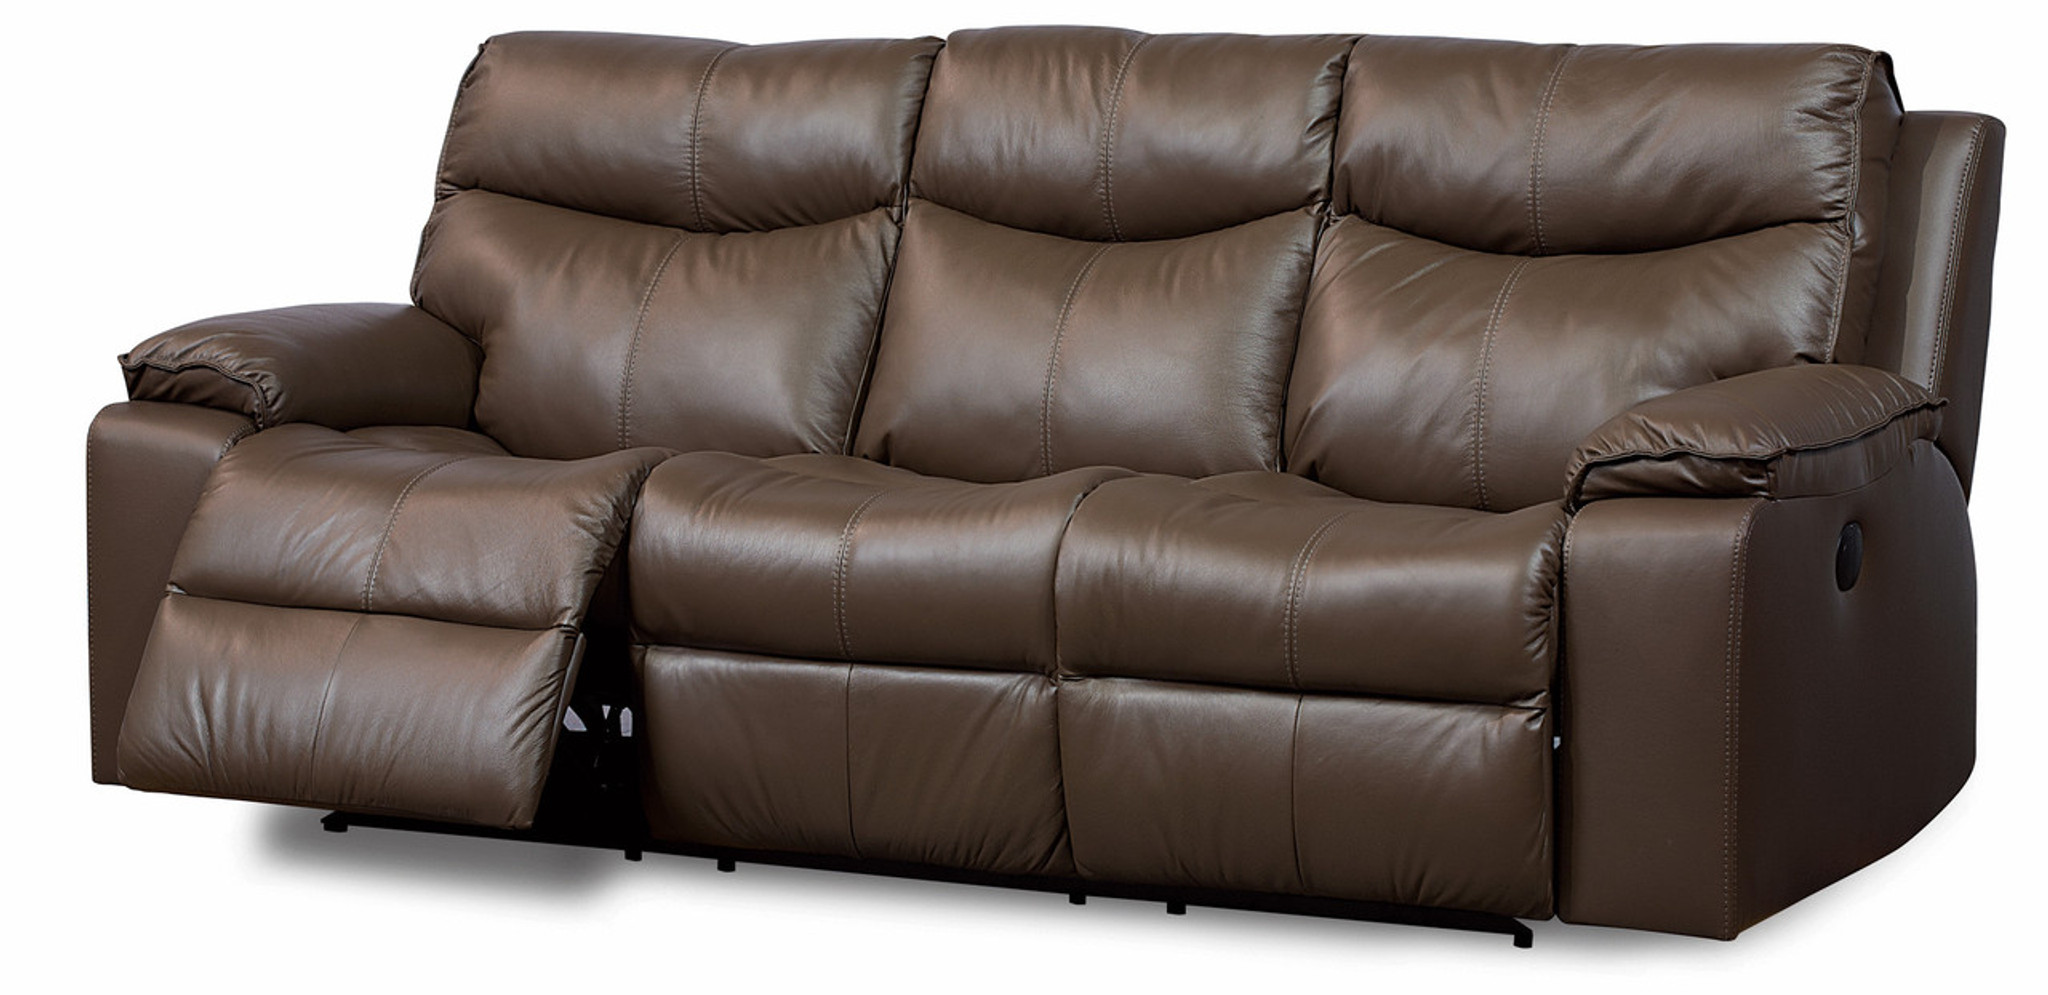 Sofa With Recliner Palliser 41034 Providence Sofa Recliner